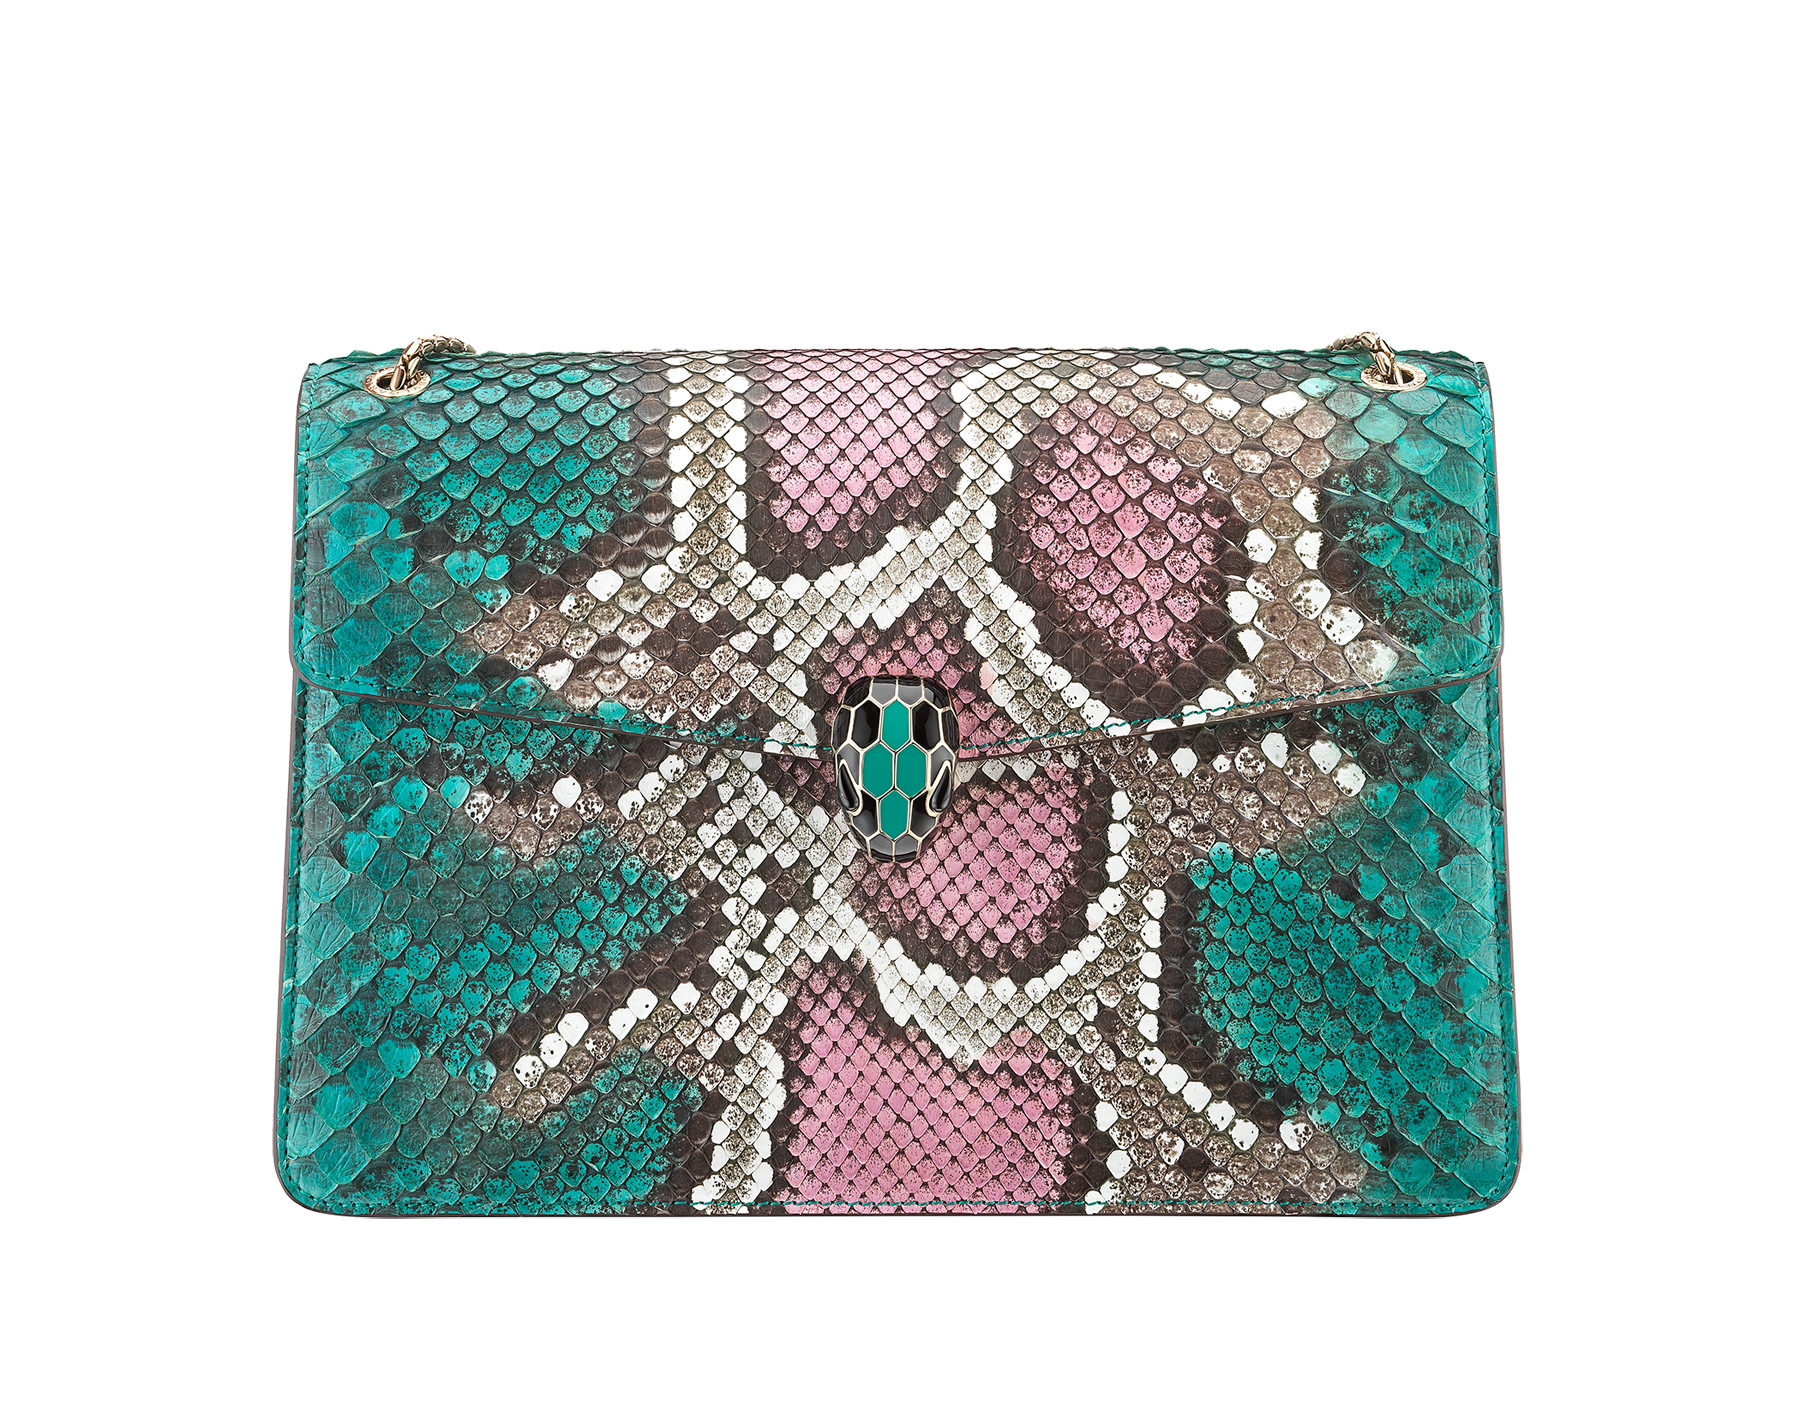 Serpenti Forever shoulder bag in arctic jade Psiche python skin. Iconic snakehead closure in light gold plated brass embellished with black and arctic jade enamel and black onyx eyes. 288939 image 1